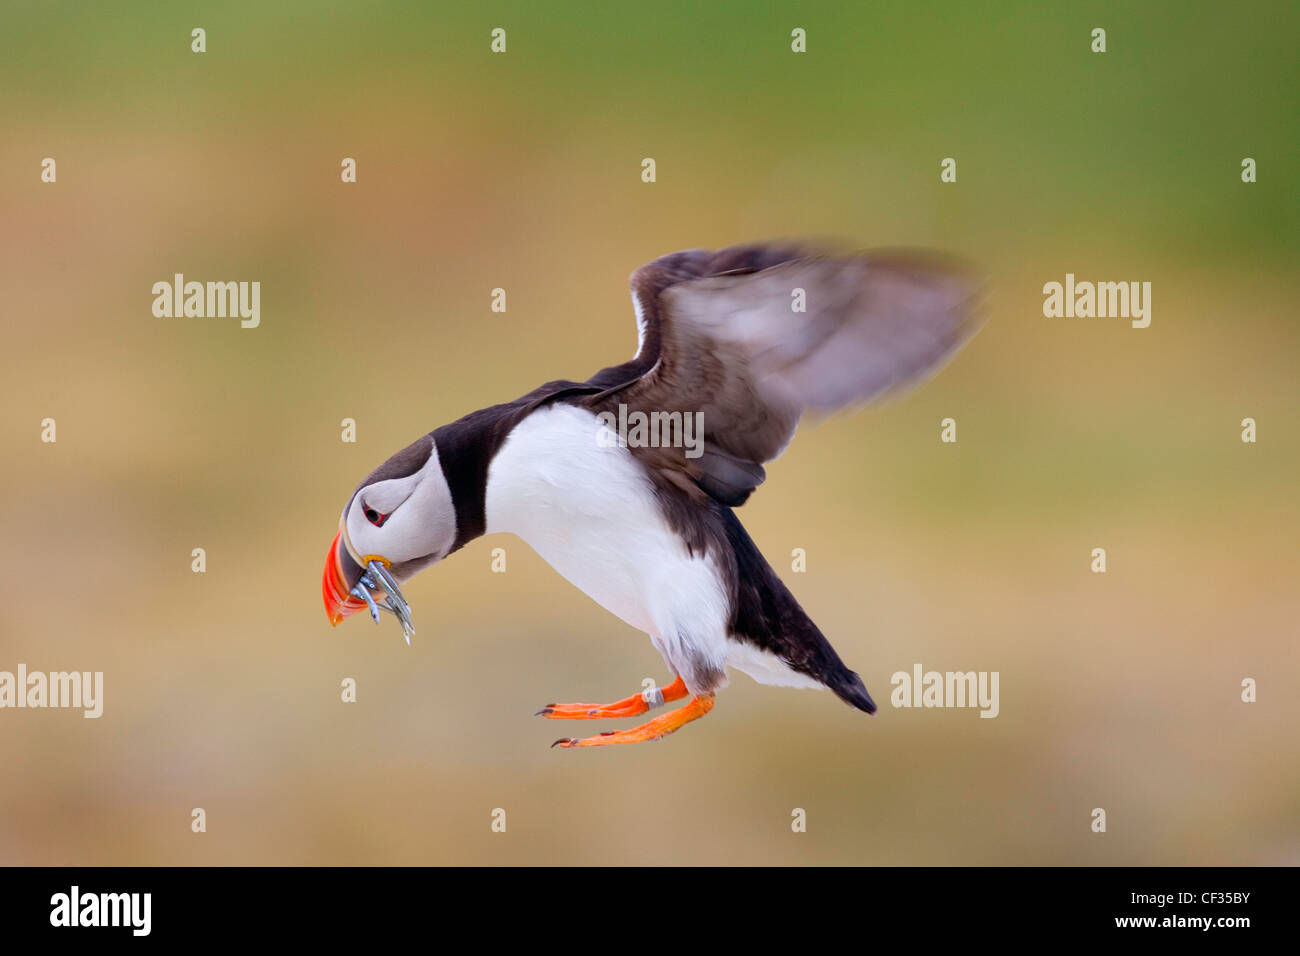 An Atlantic Puffin (Fratercula arctica) flying with fish in its bill. - Stock Image